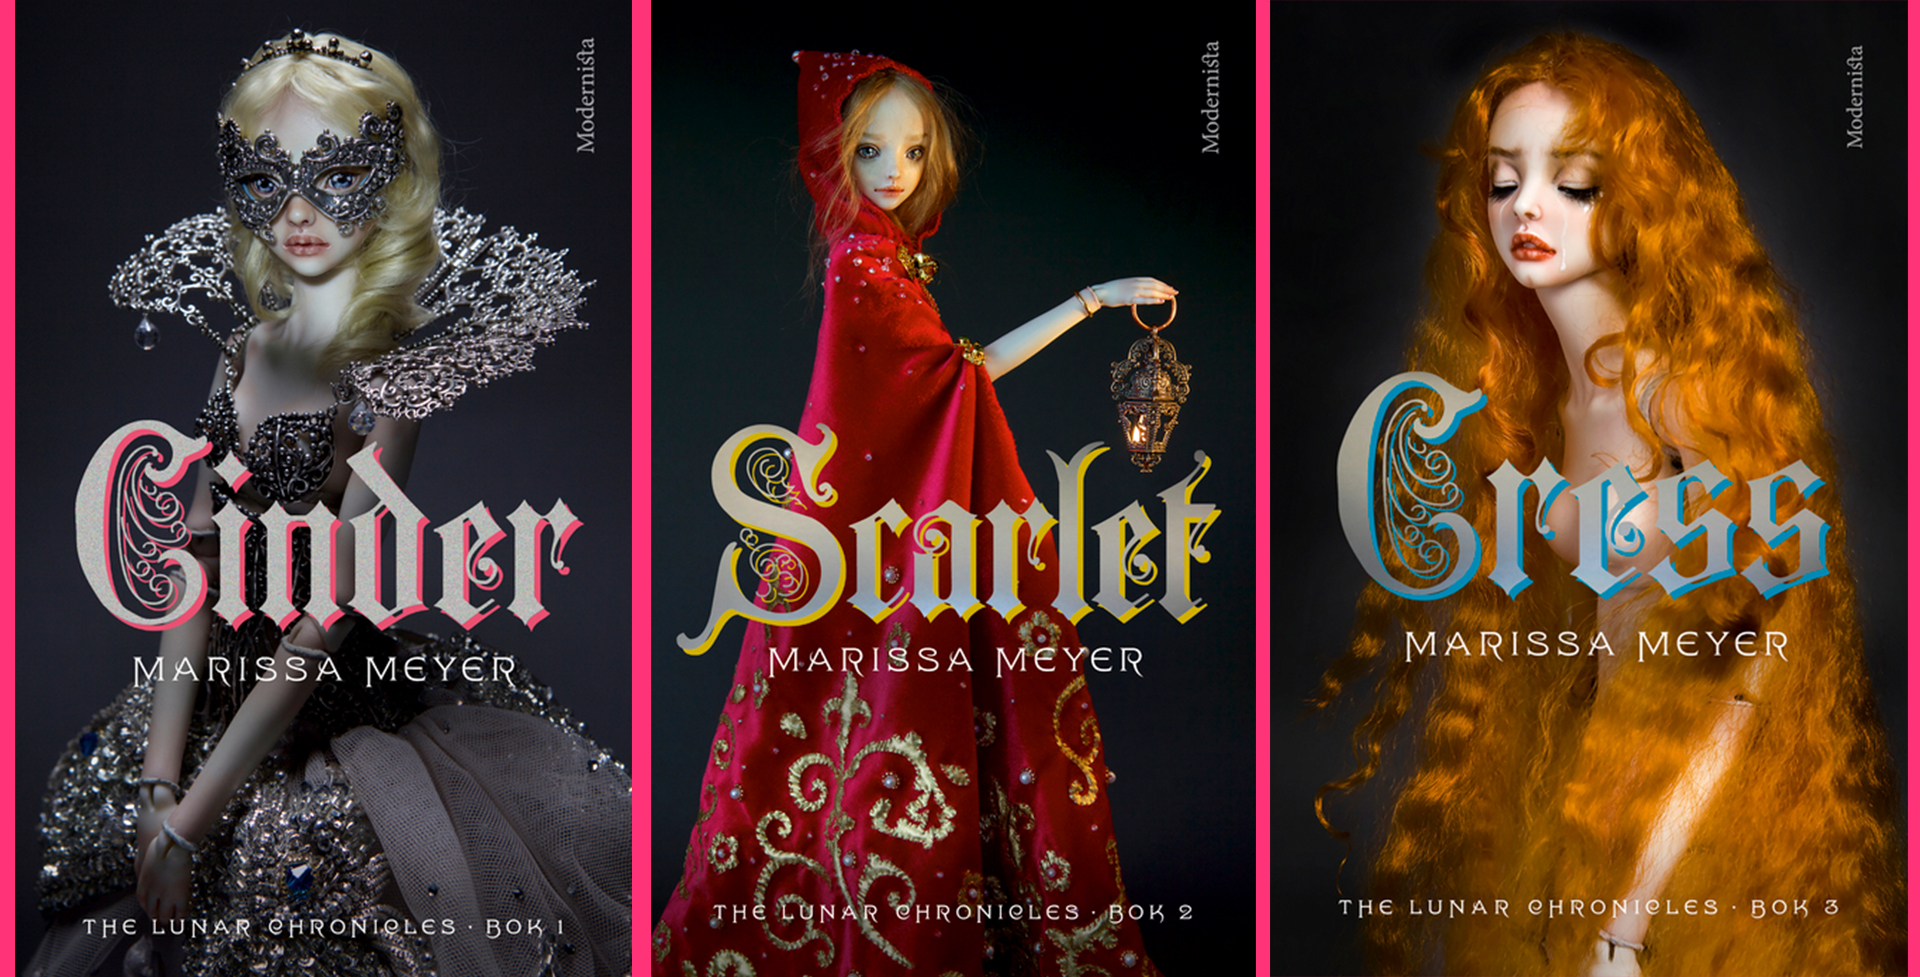 lunar chronicles marissa meyer cinder scarlett cress